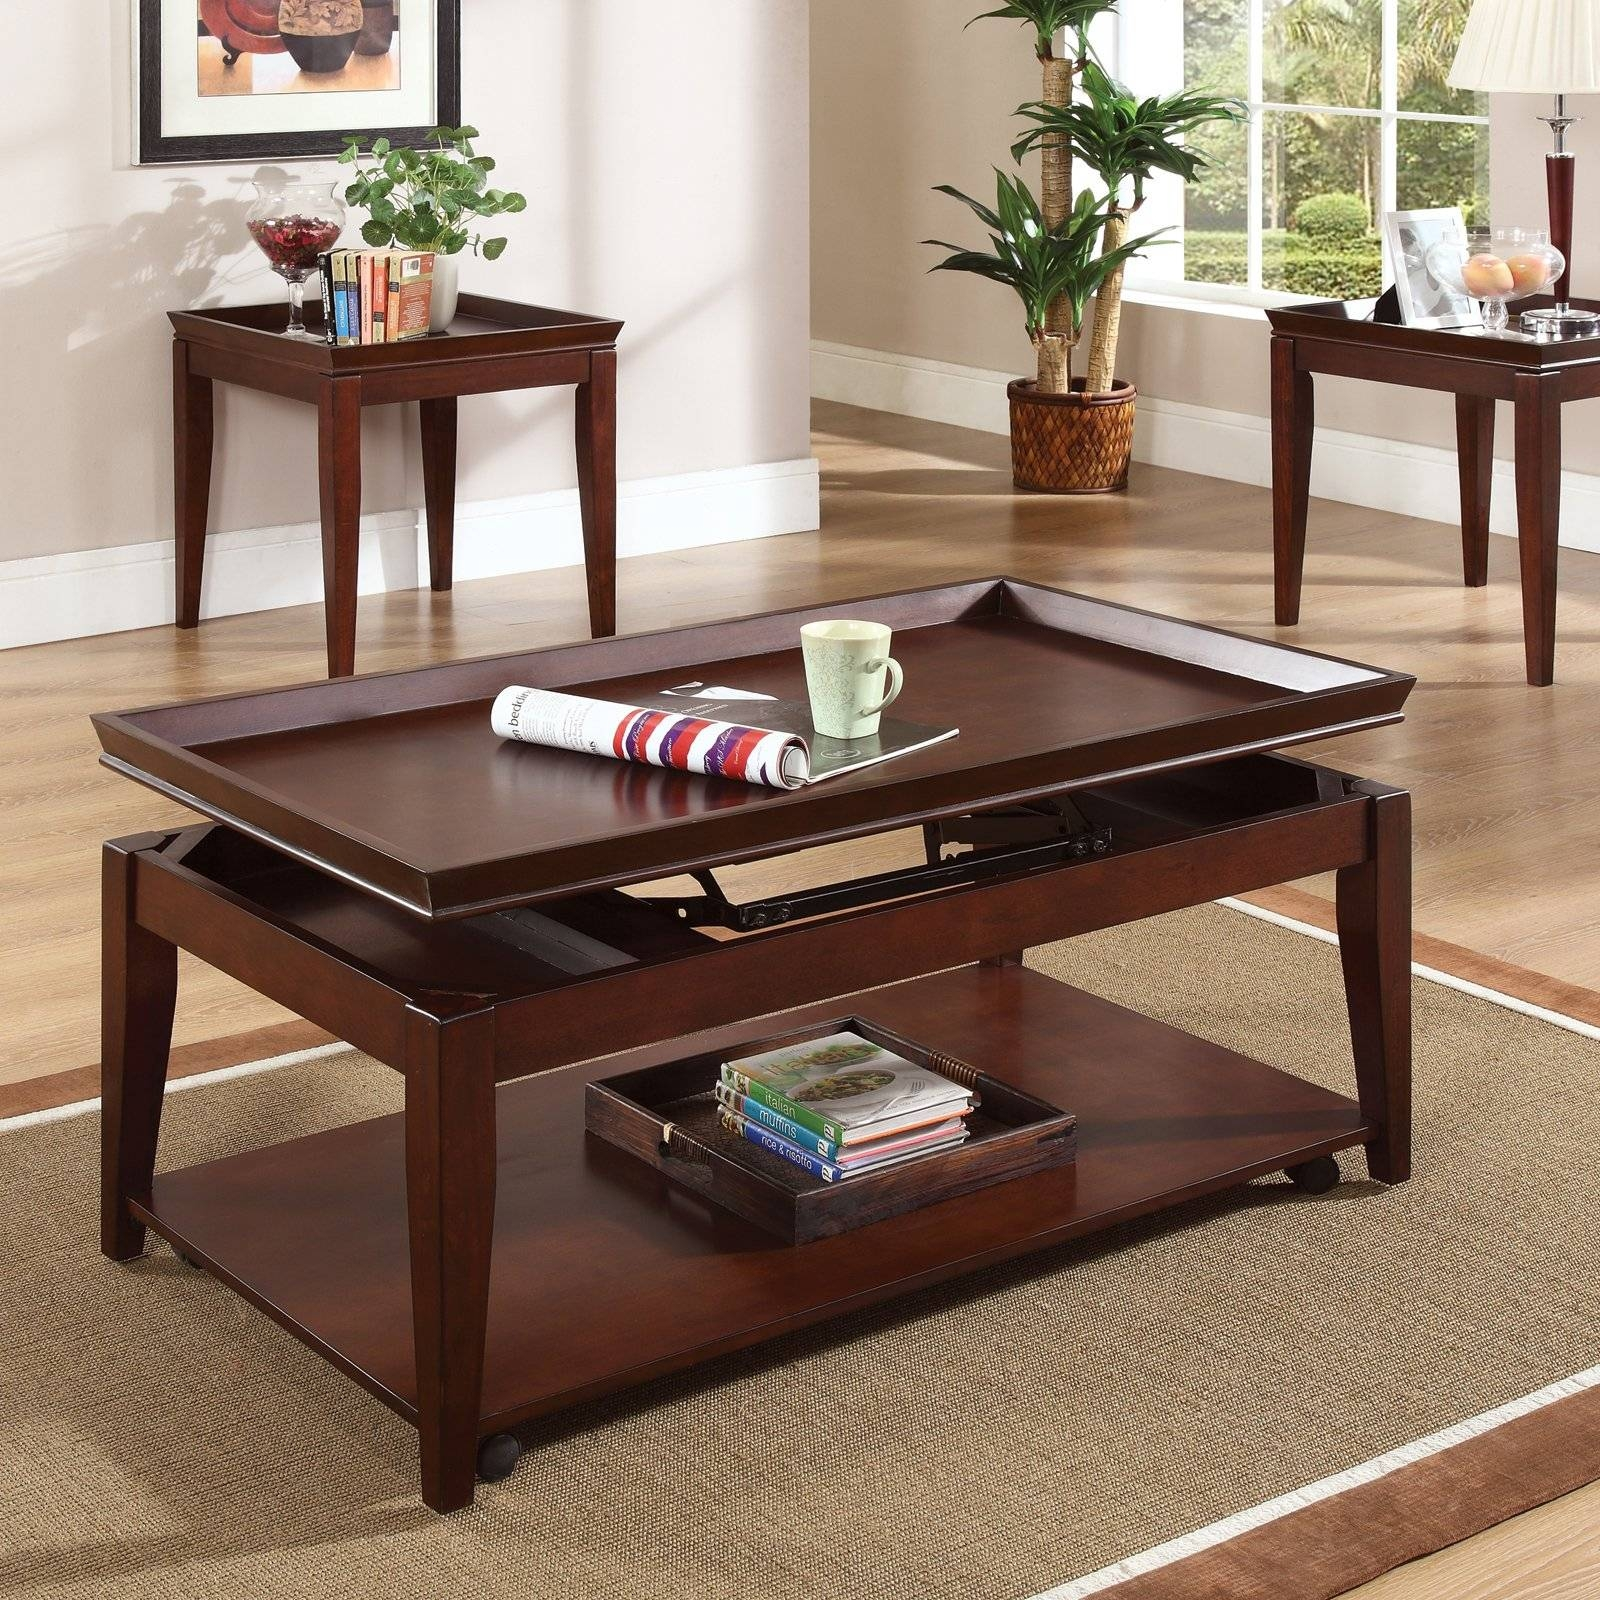 Lift Table Coffee Table: 30 Ideas Of Pull Up Coffee Tables